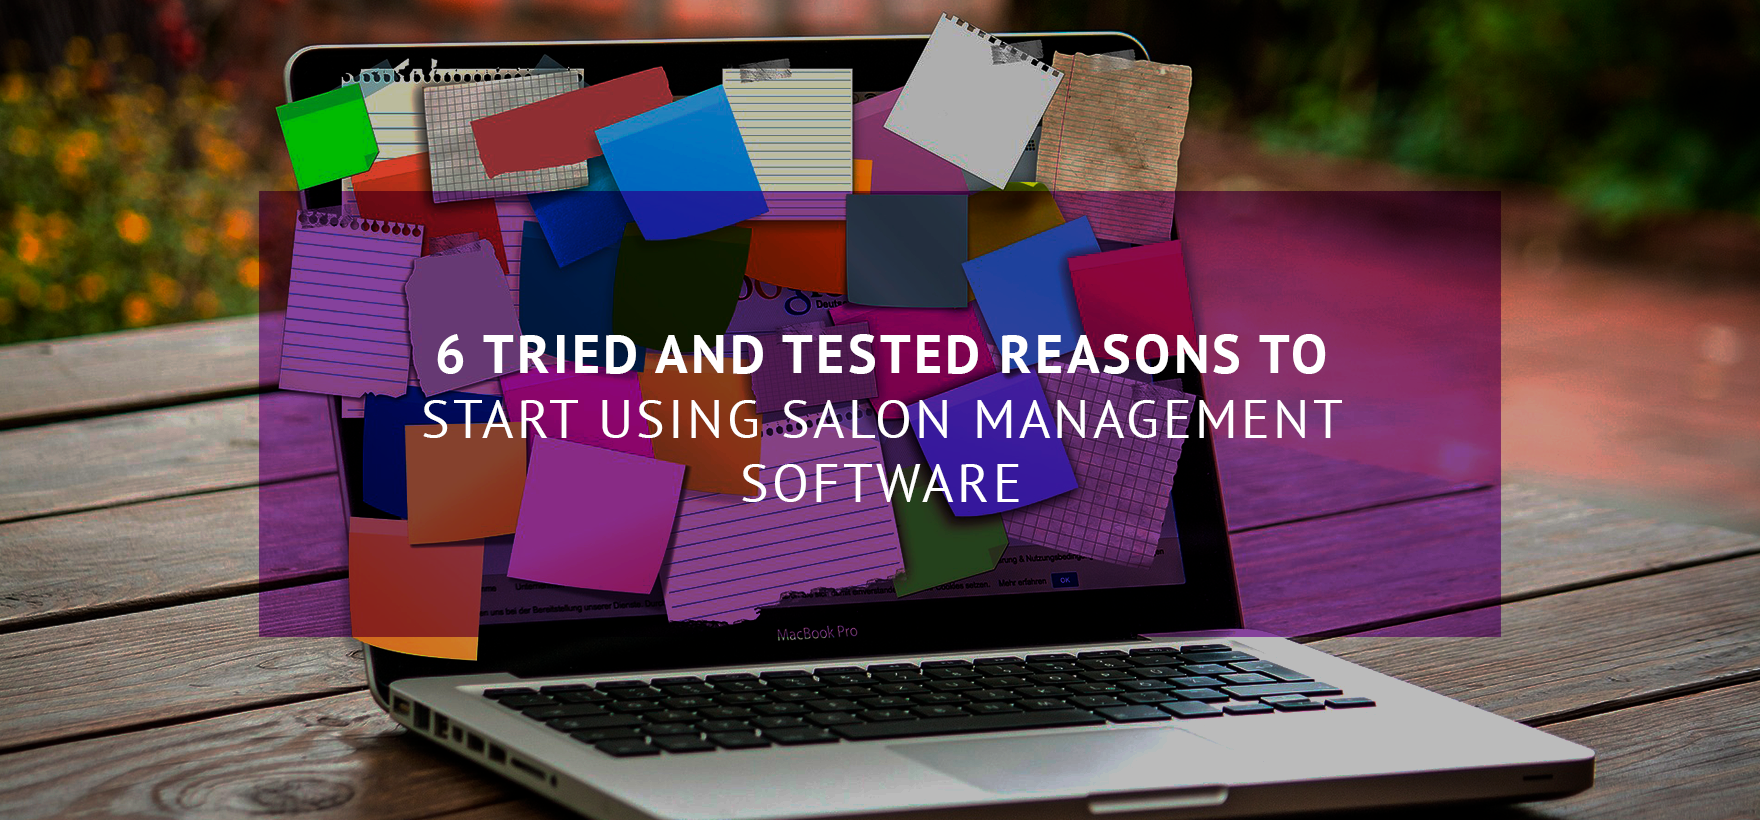 6 tried and tested reasons to start using salon management software